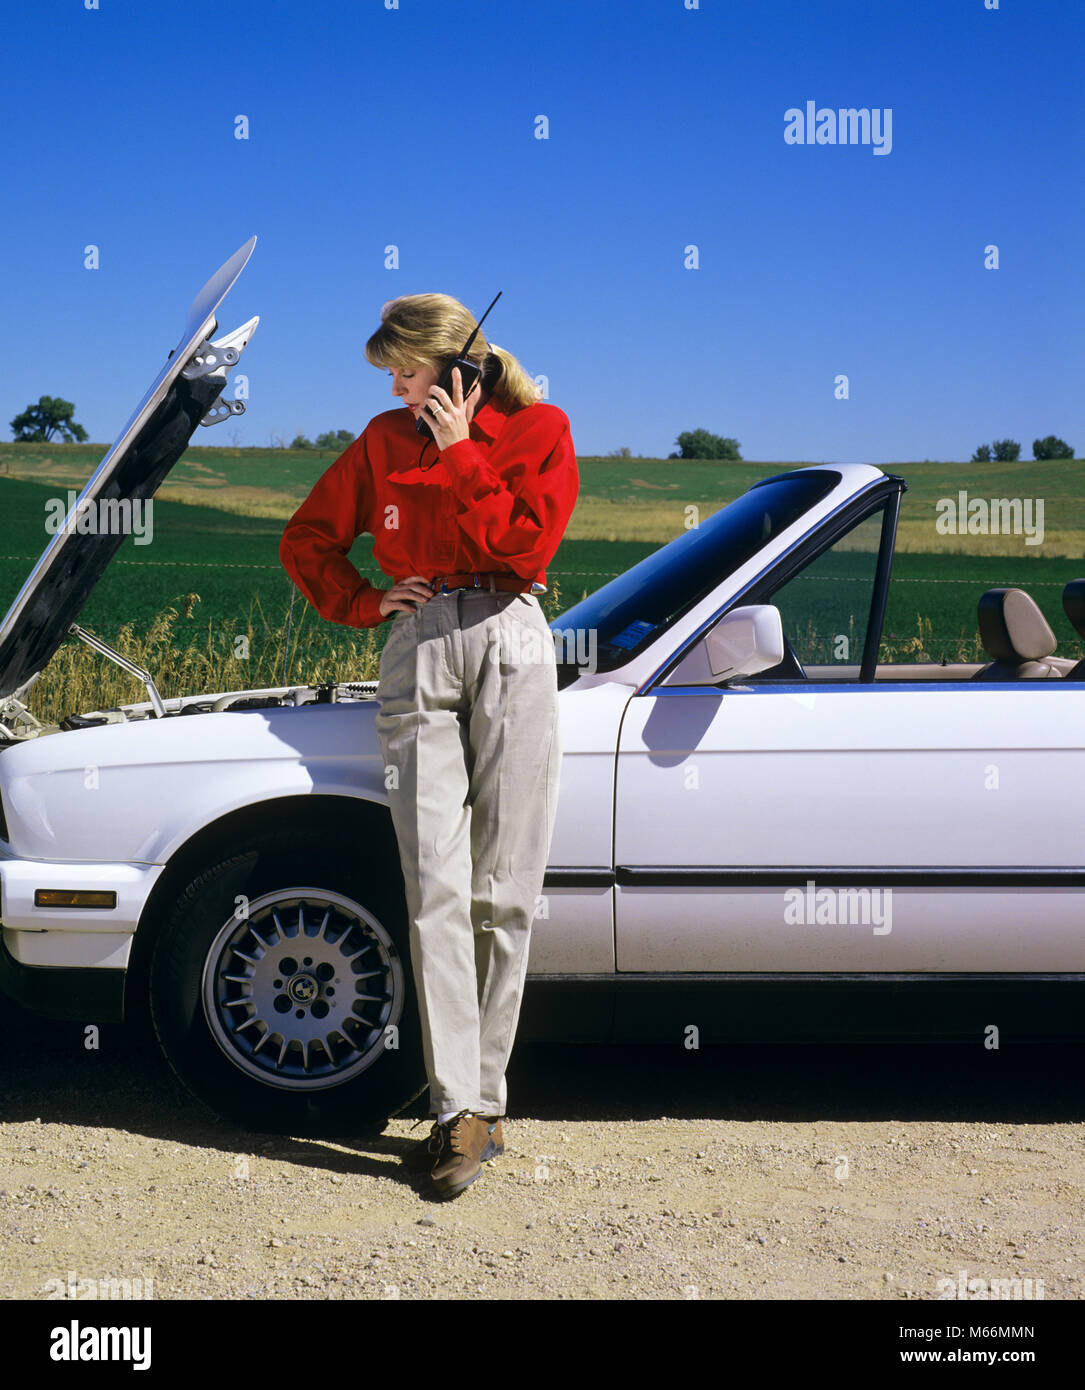 1990s WOMAN WITH CAR TROUBLE ON CELLULAR PHONE CALLING FOR ROADSIDE ASSISTANCE - km10856 DEL003 HARS FULL-LENGTH - Stock Image